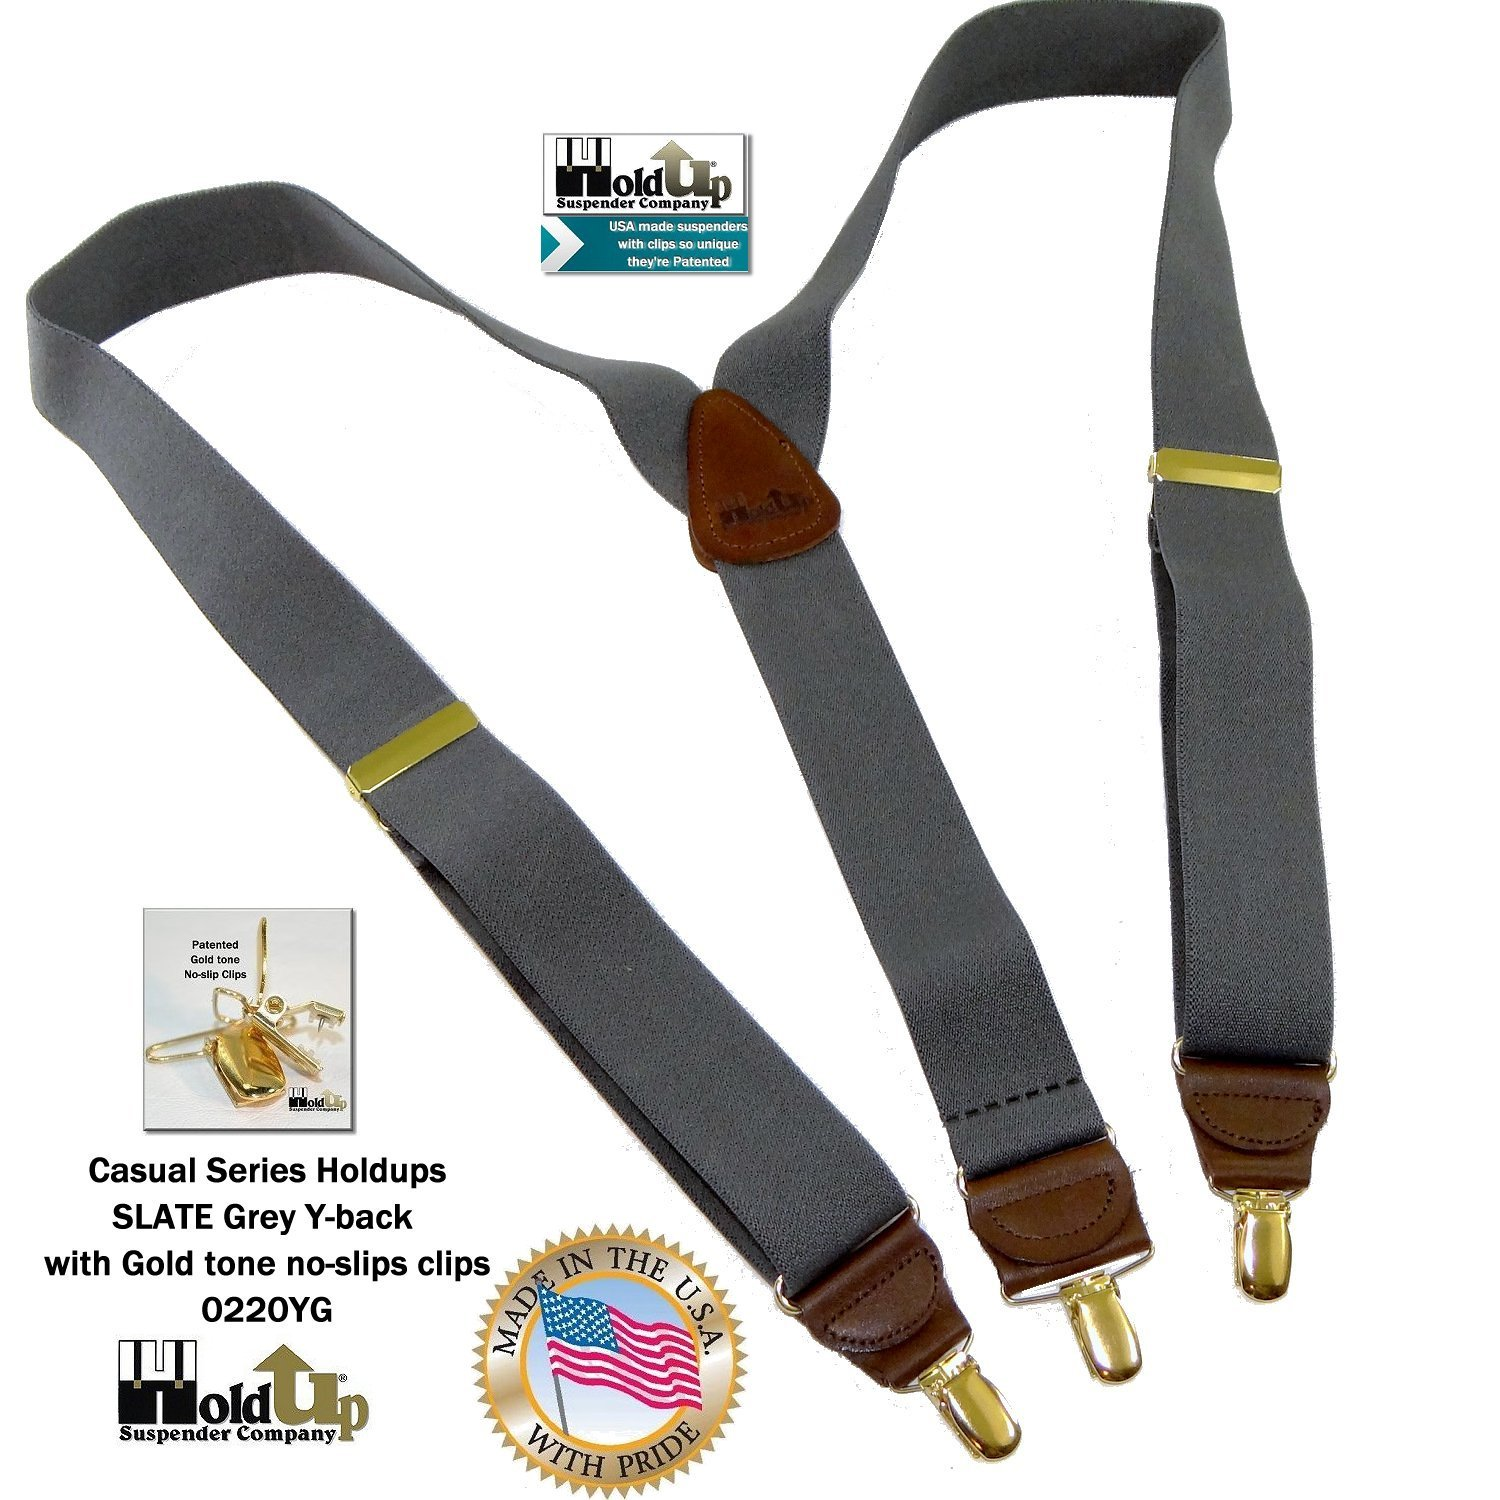 Holdup Suspender Company Slate Grey Men's Y-back Clip-on Suspenders in 1 1/2'' width featuring Patented No-slip Gold-Tone Clips by Hold-Up Suspender Co. (Image #3)